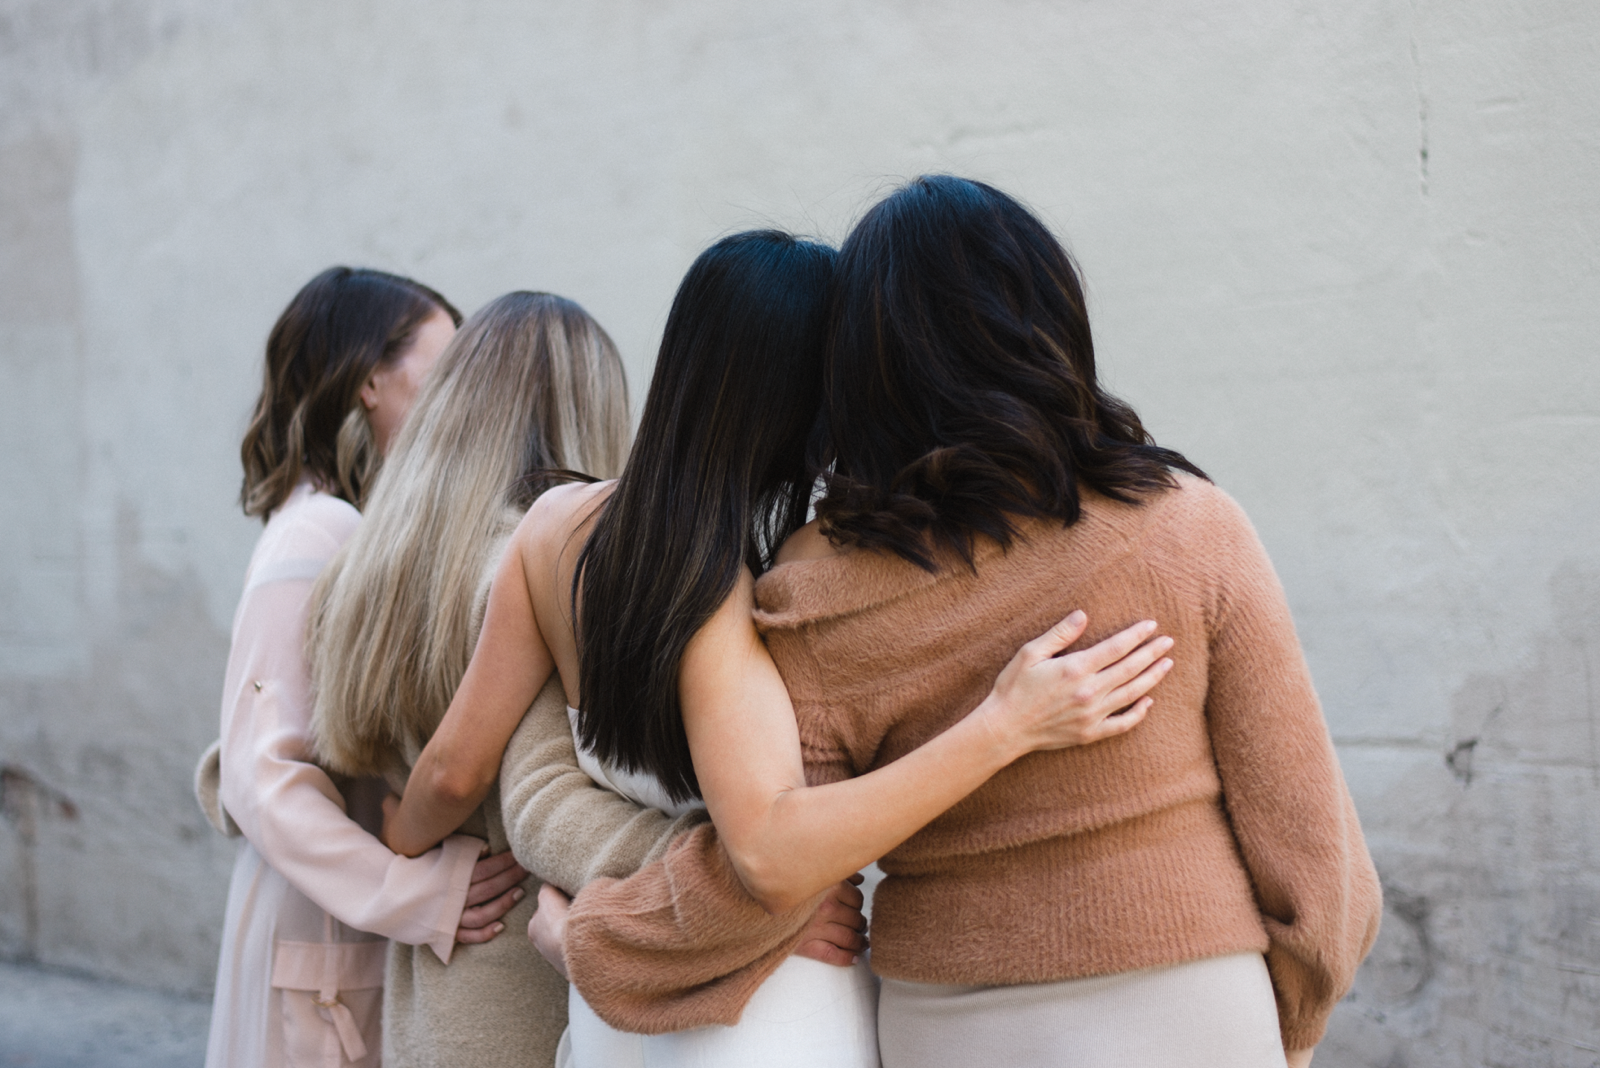 Four happy moms with their backs to the camera and arms wrapped around each other in support and community.